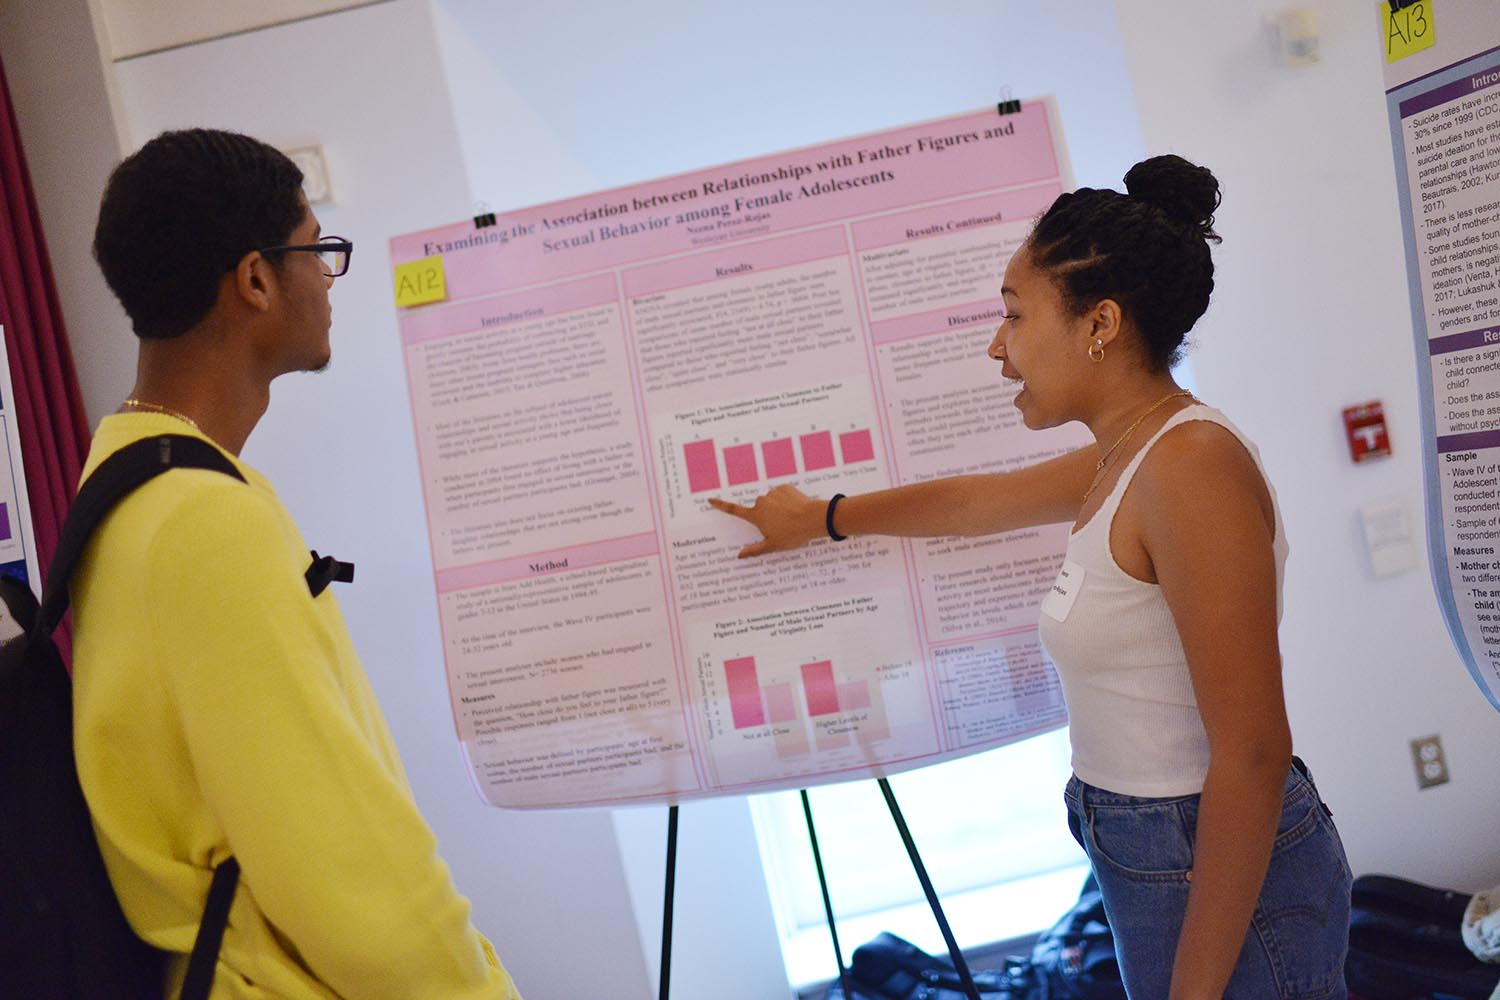 "Neena Perez-Rojas '21 discussed her study, ""Examining the Association between Relationships with Father Figures and Sexual Behavior among Adolescents."""